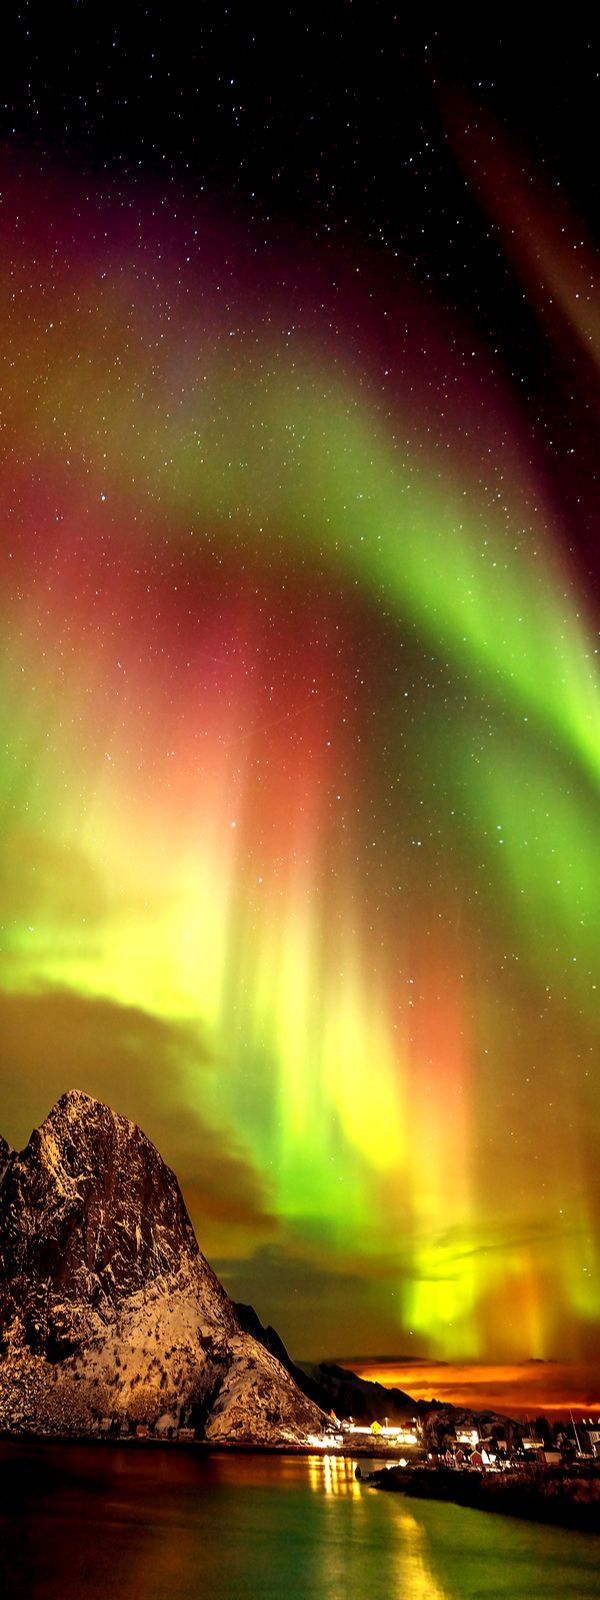 HEALING & ACTIVATING POWER OF NATURE Northern Lights, Norway, majick happening before your eyes.